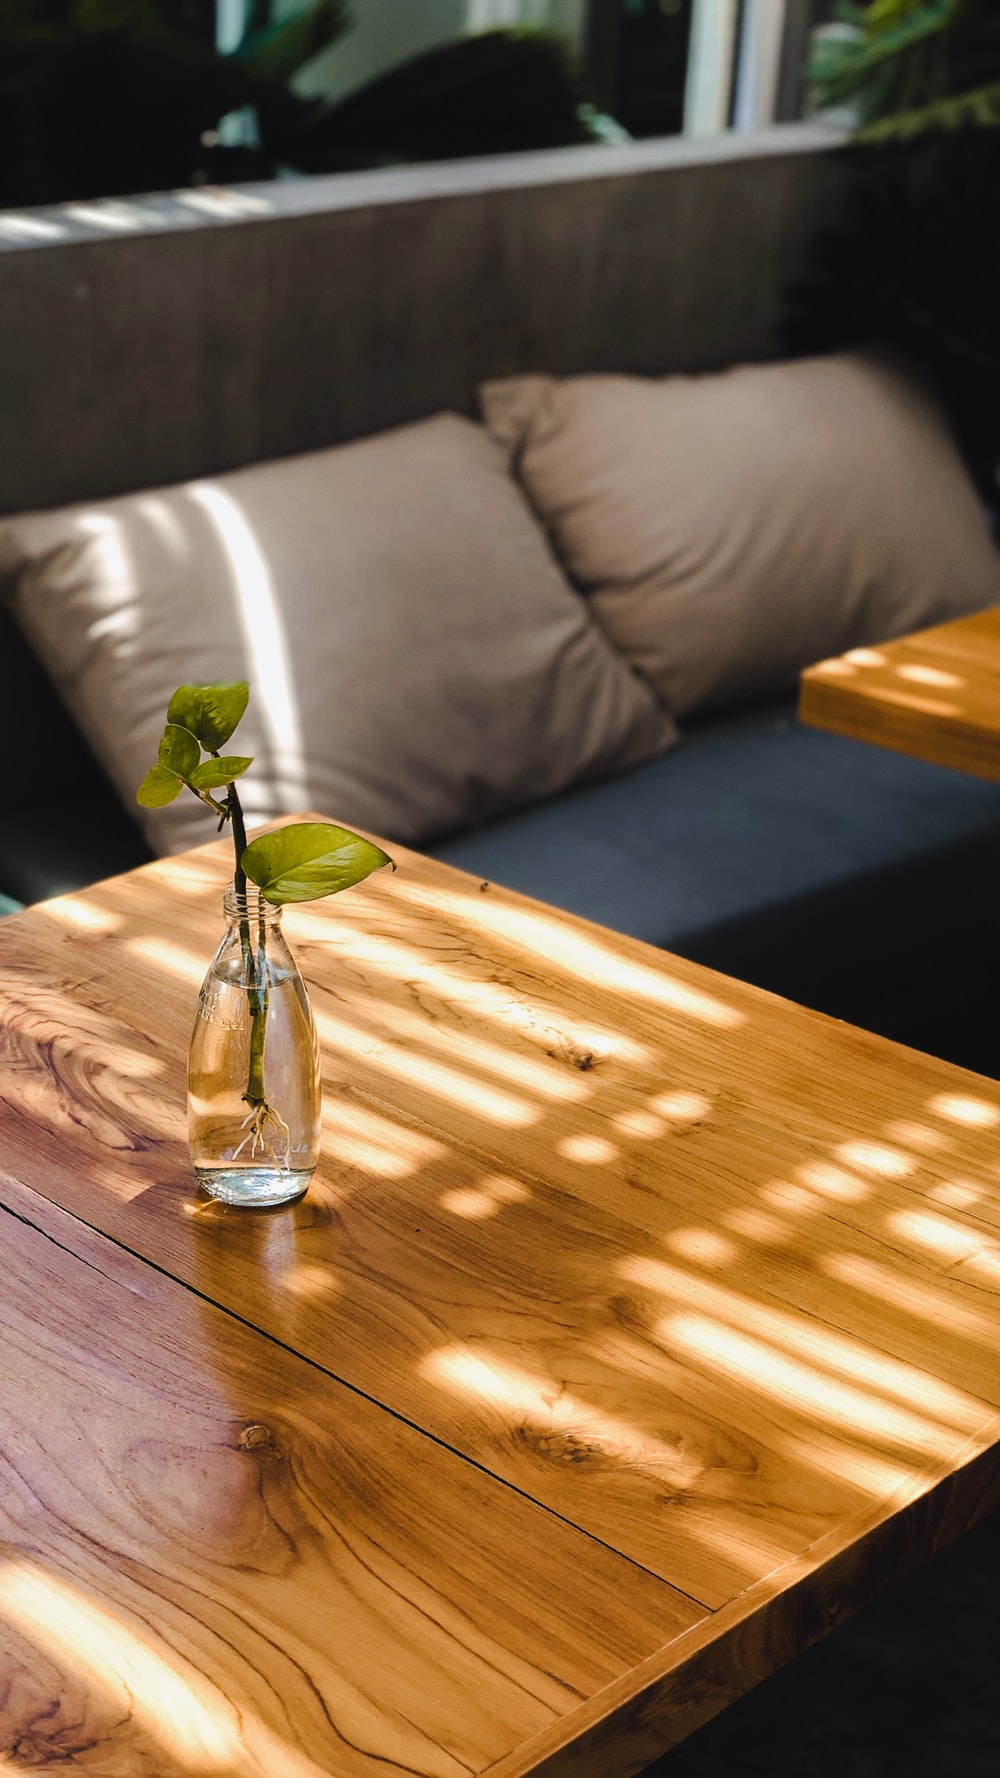 green rose in clear glass vase on brown wooden table